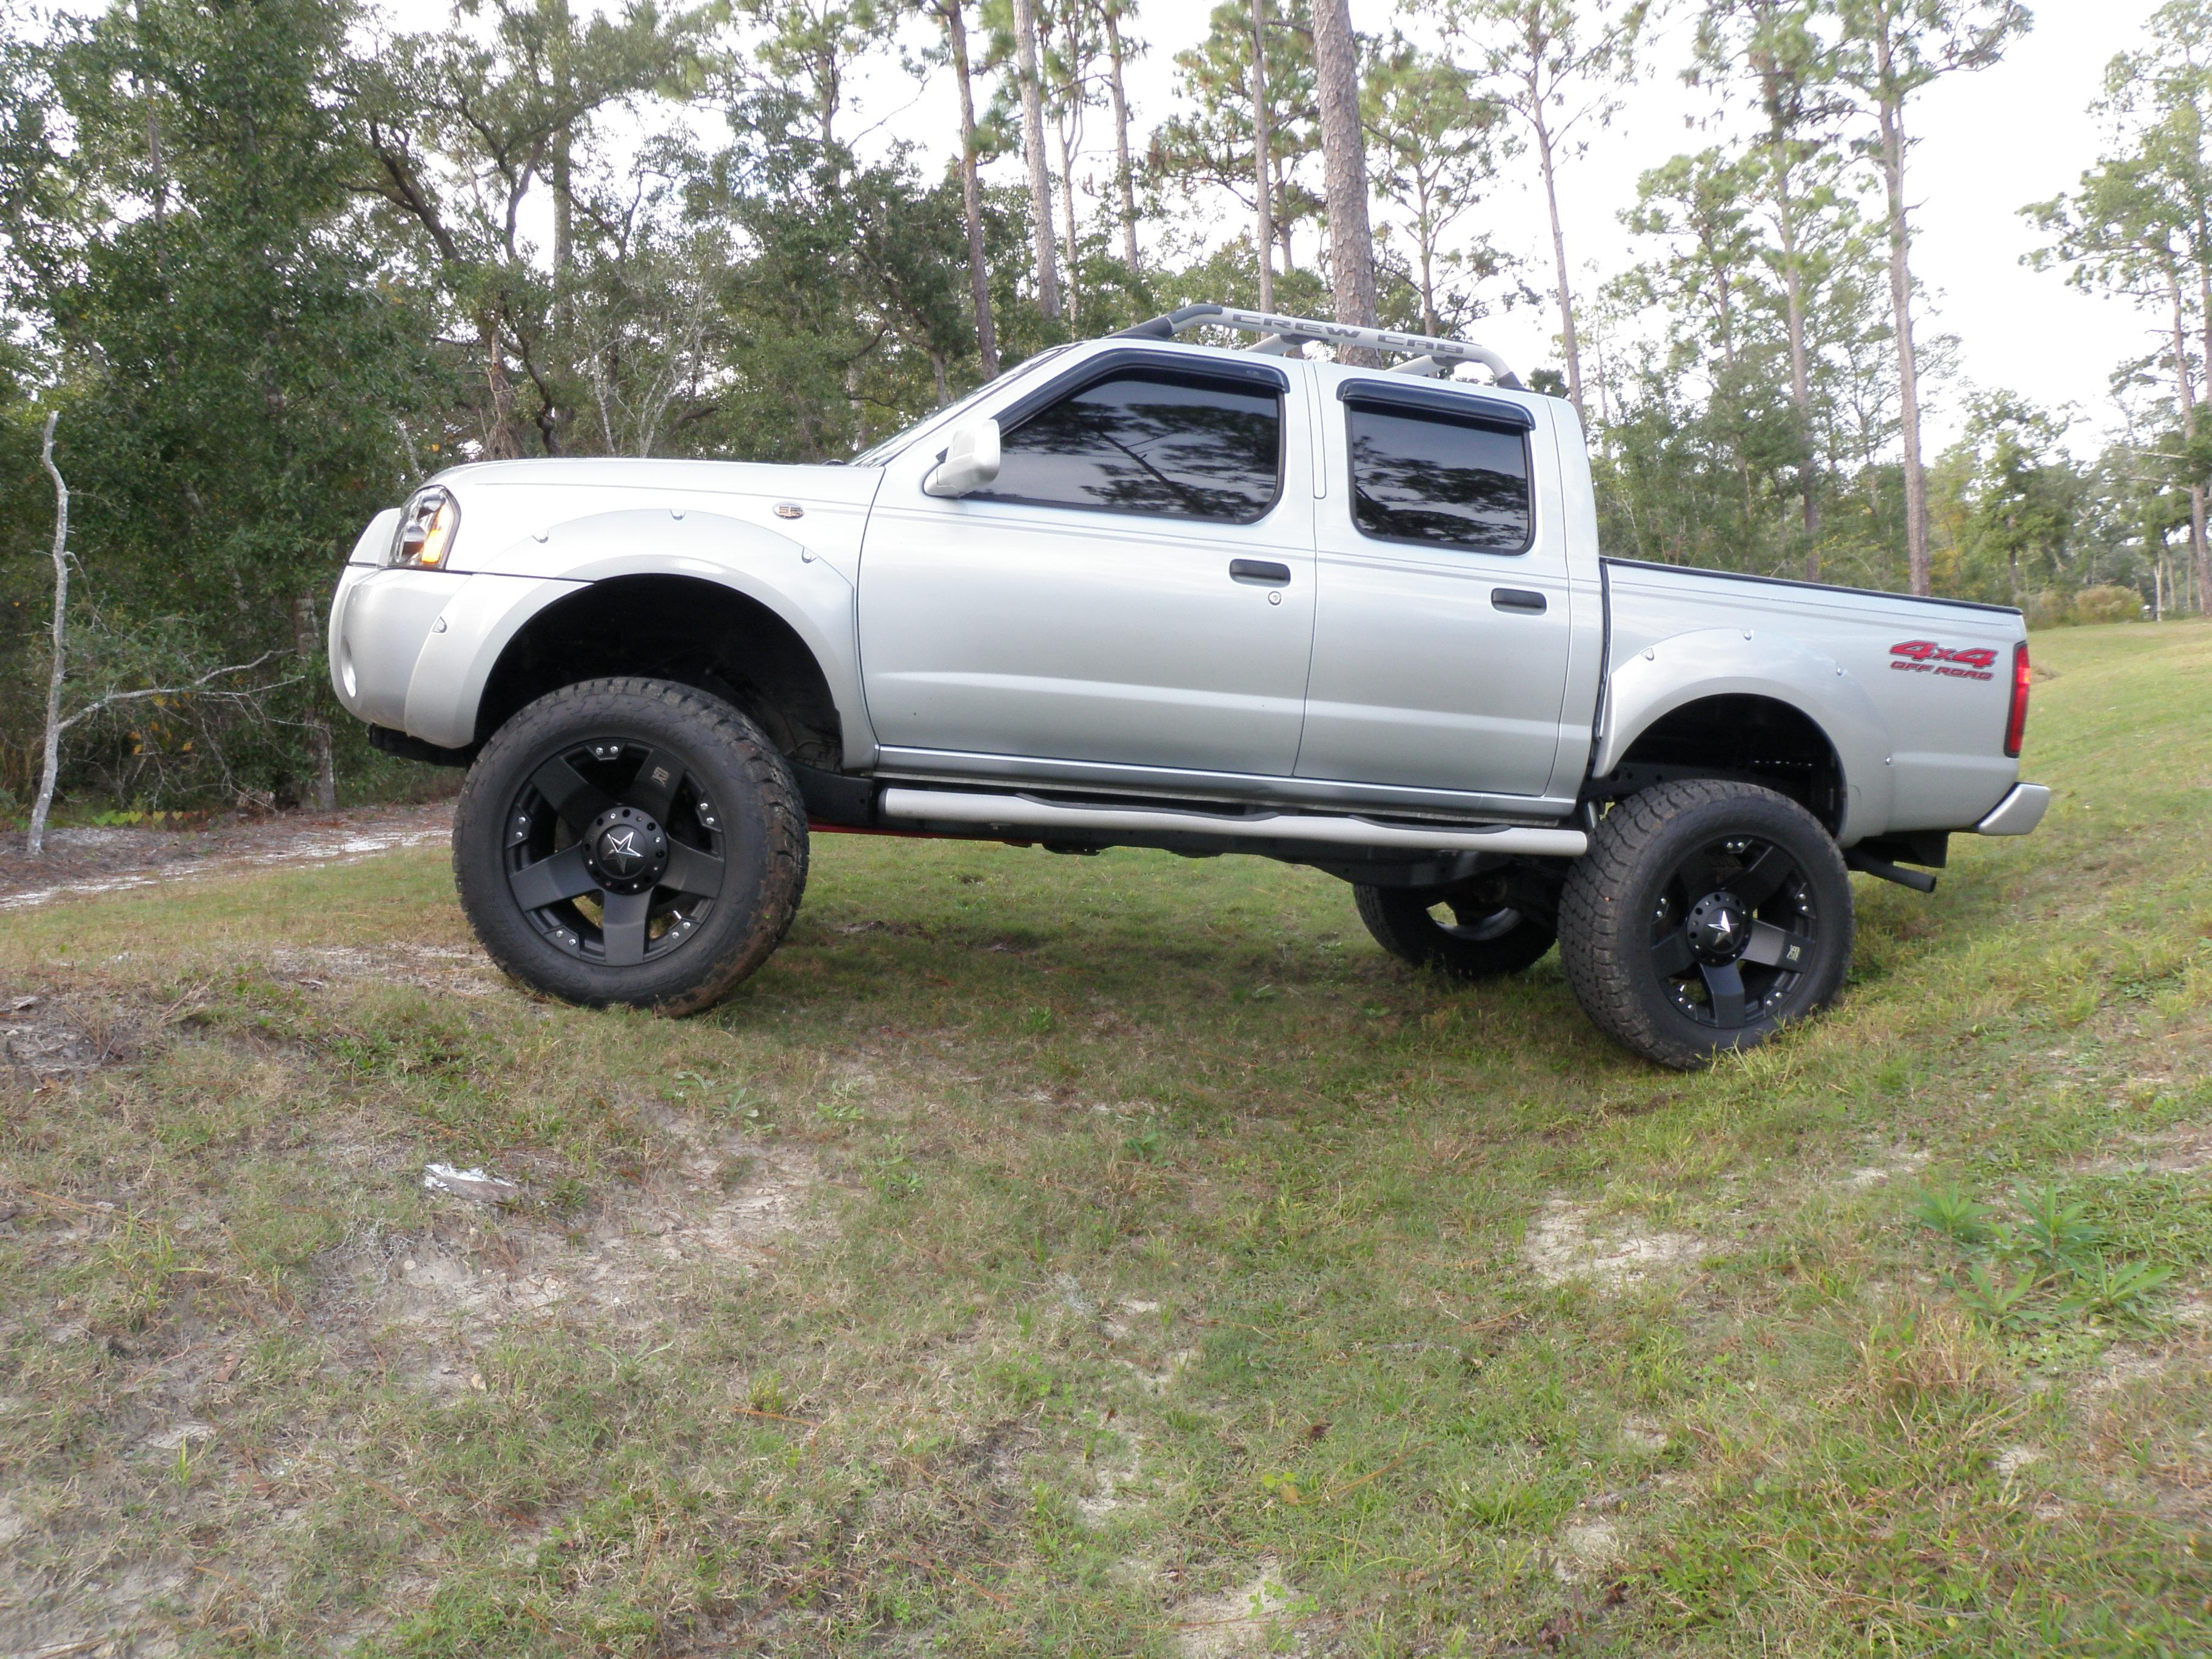 2001 nissan frontier crew cab se 4d view all 2001 nissan jaxonsfrontier 2001 nissan frontier crew cab vanachro Images